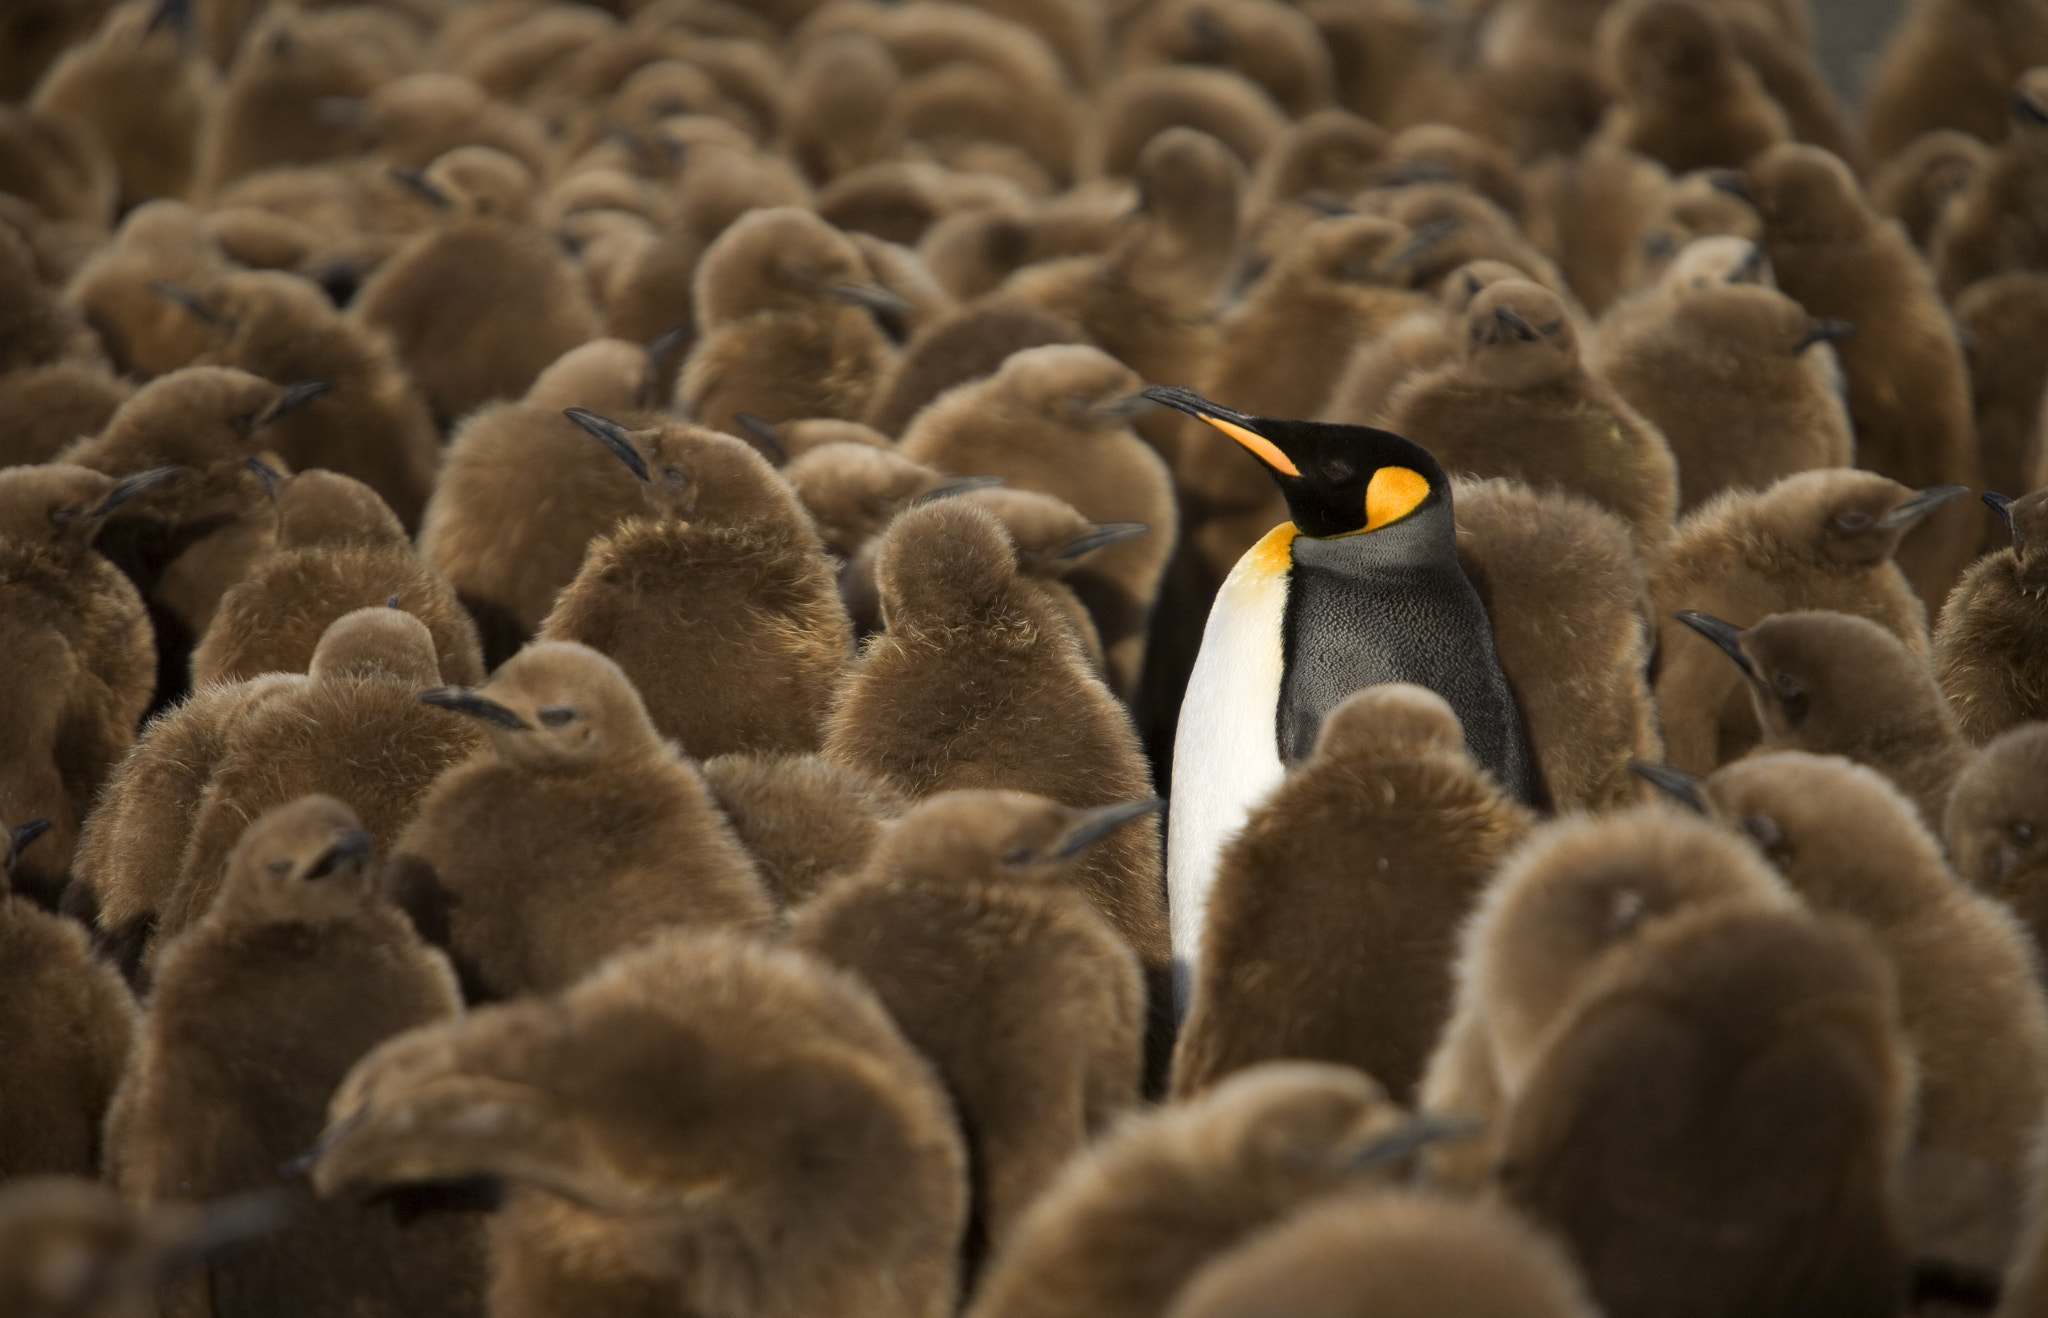 Photograph Why am I here?????? by Steve Shuey on 500px